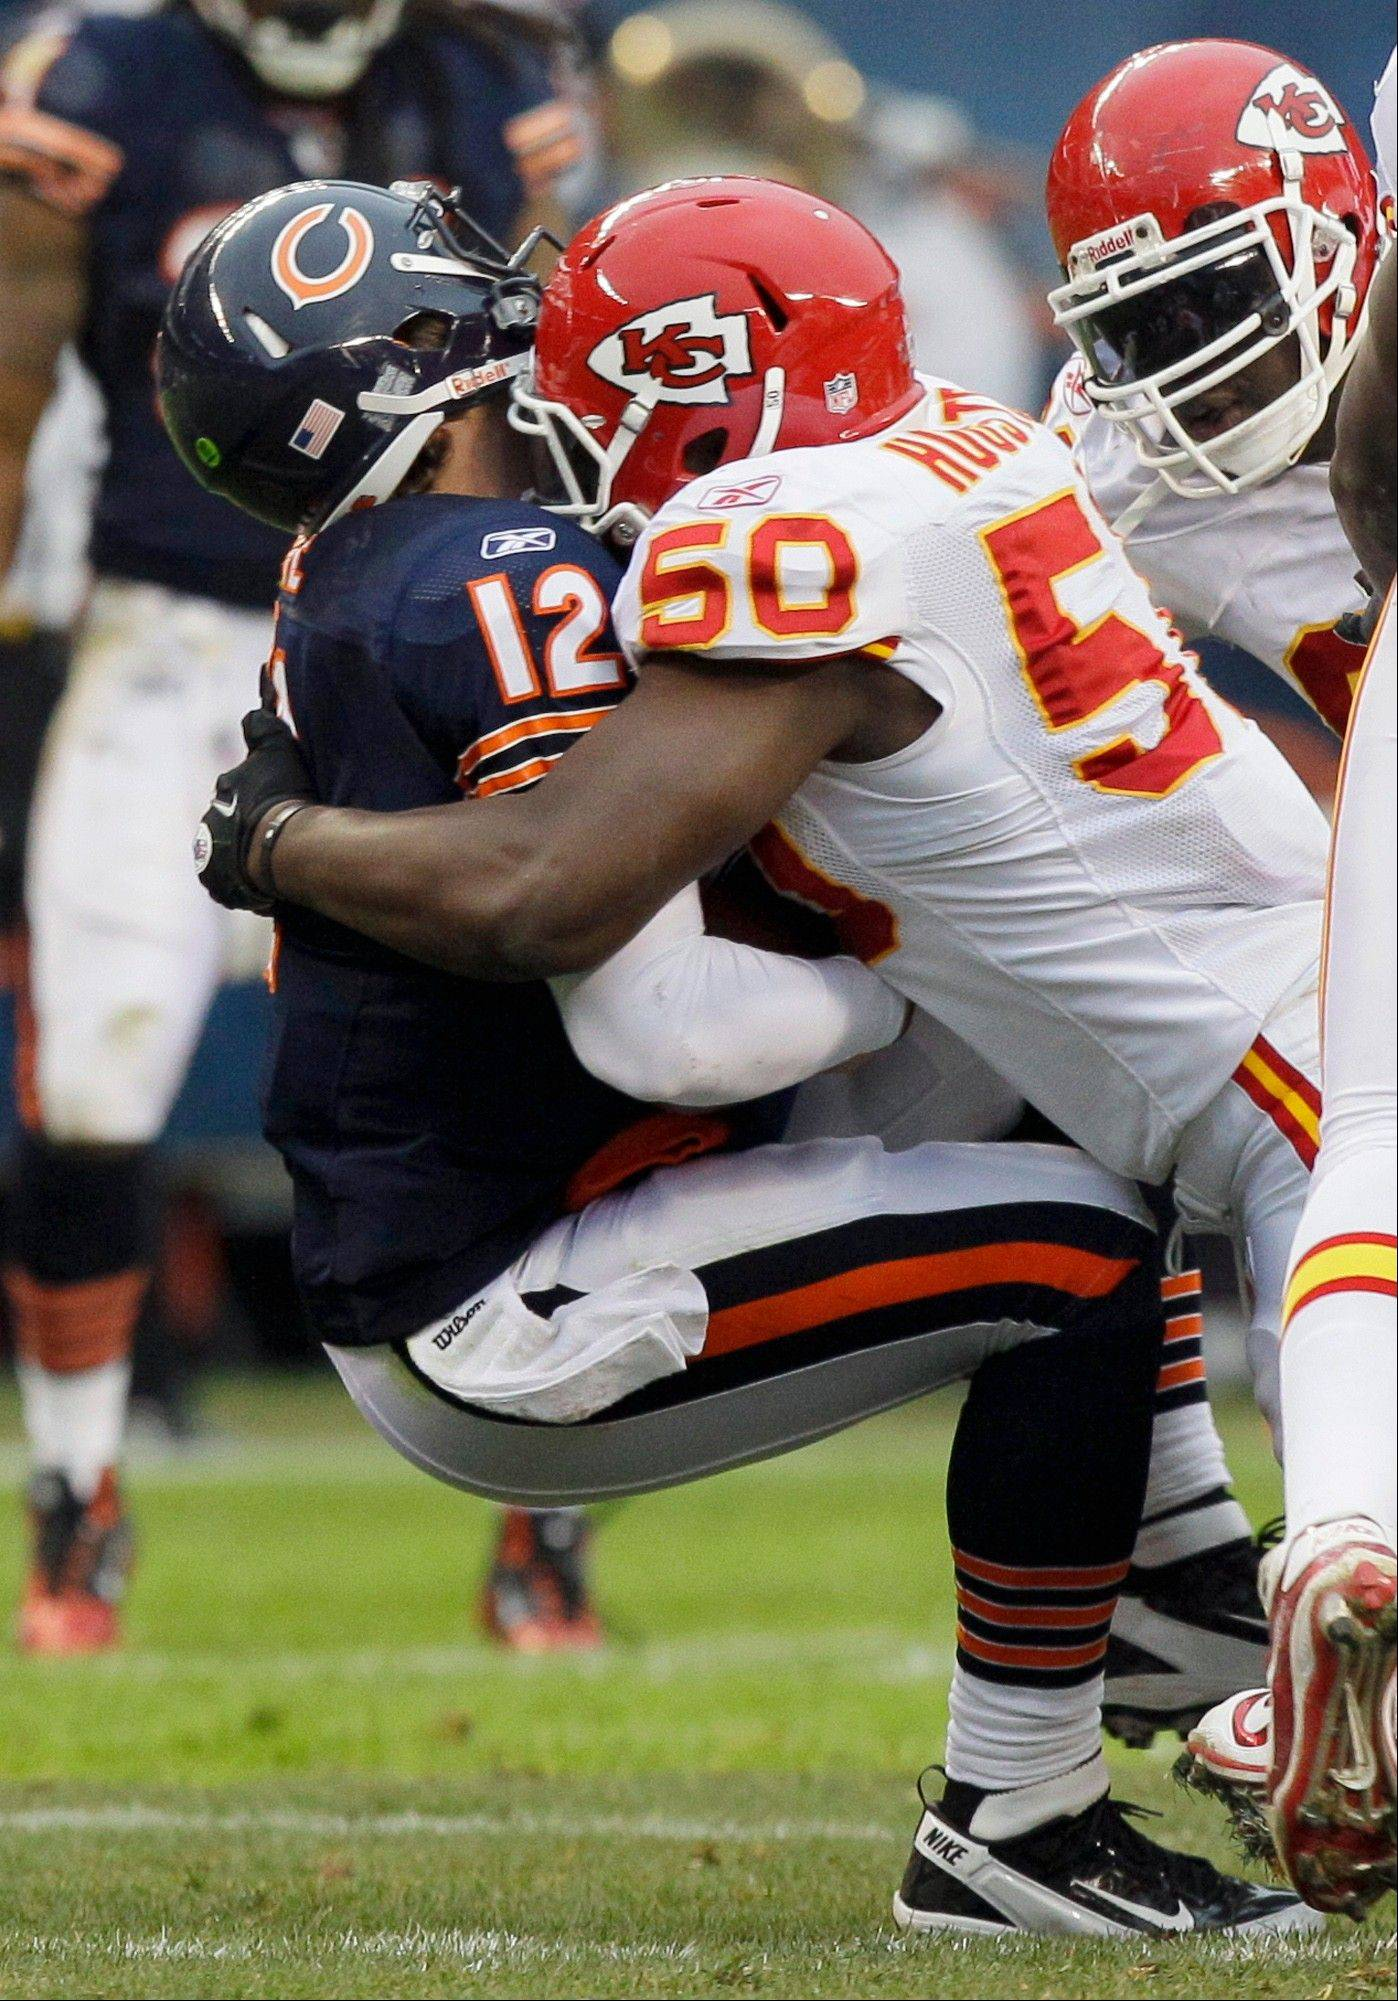 Bears quarterback Caleb Hanie (12) is sacked by Kansas City Chiefs linebacker Justin Houston (50) in the first half of an NFL football game in Chicago, Sunday, Dec. 4, 2011.